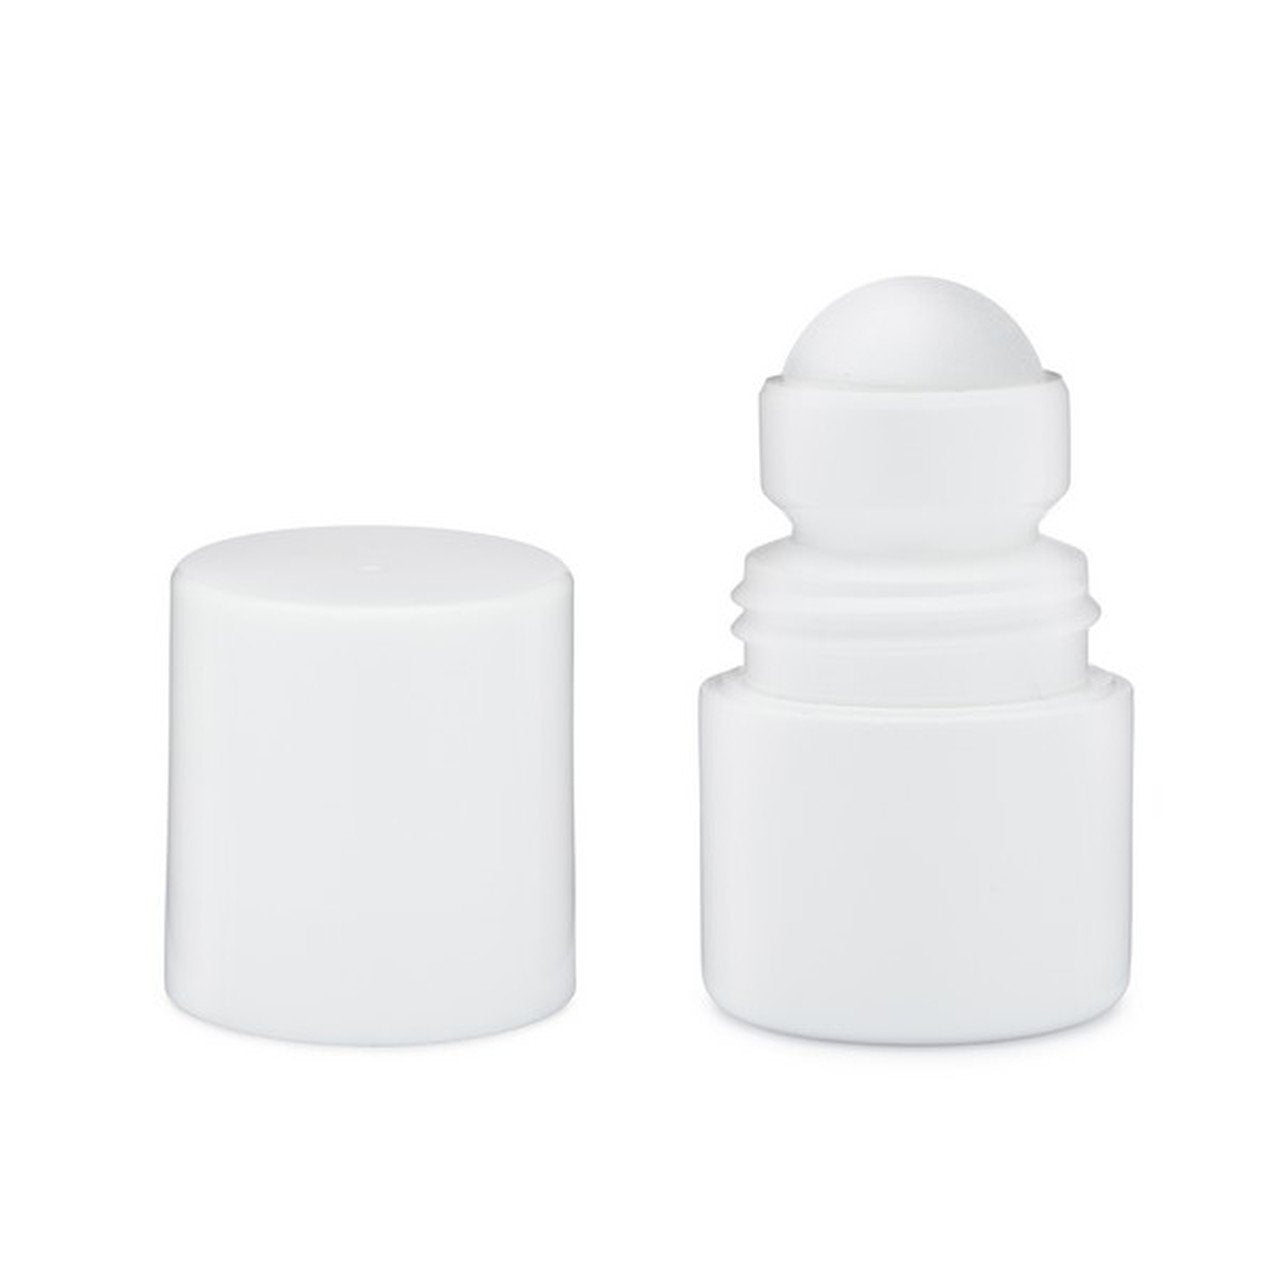 1 oz. White HDPE Plastic Roll On - Bottle Only - Cased 1400 - Rock Bottom Bottles / Packaging Company LLC